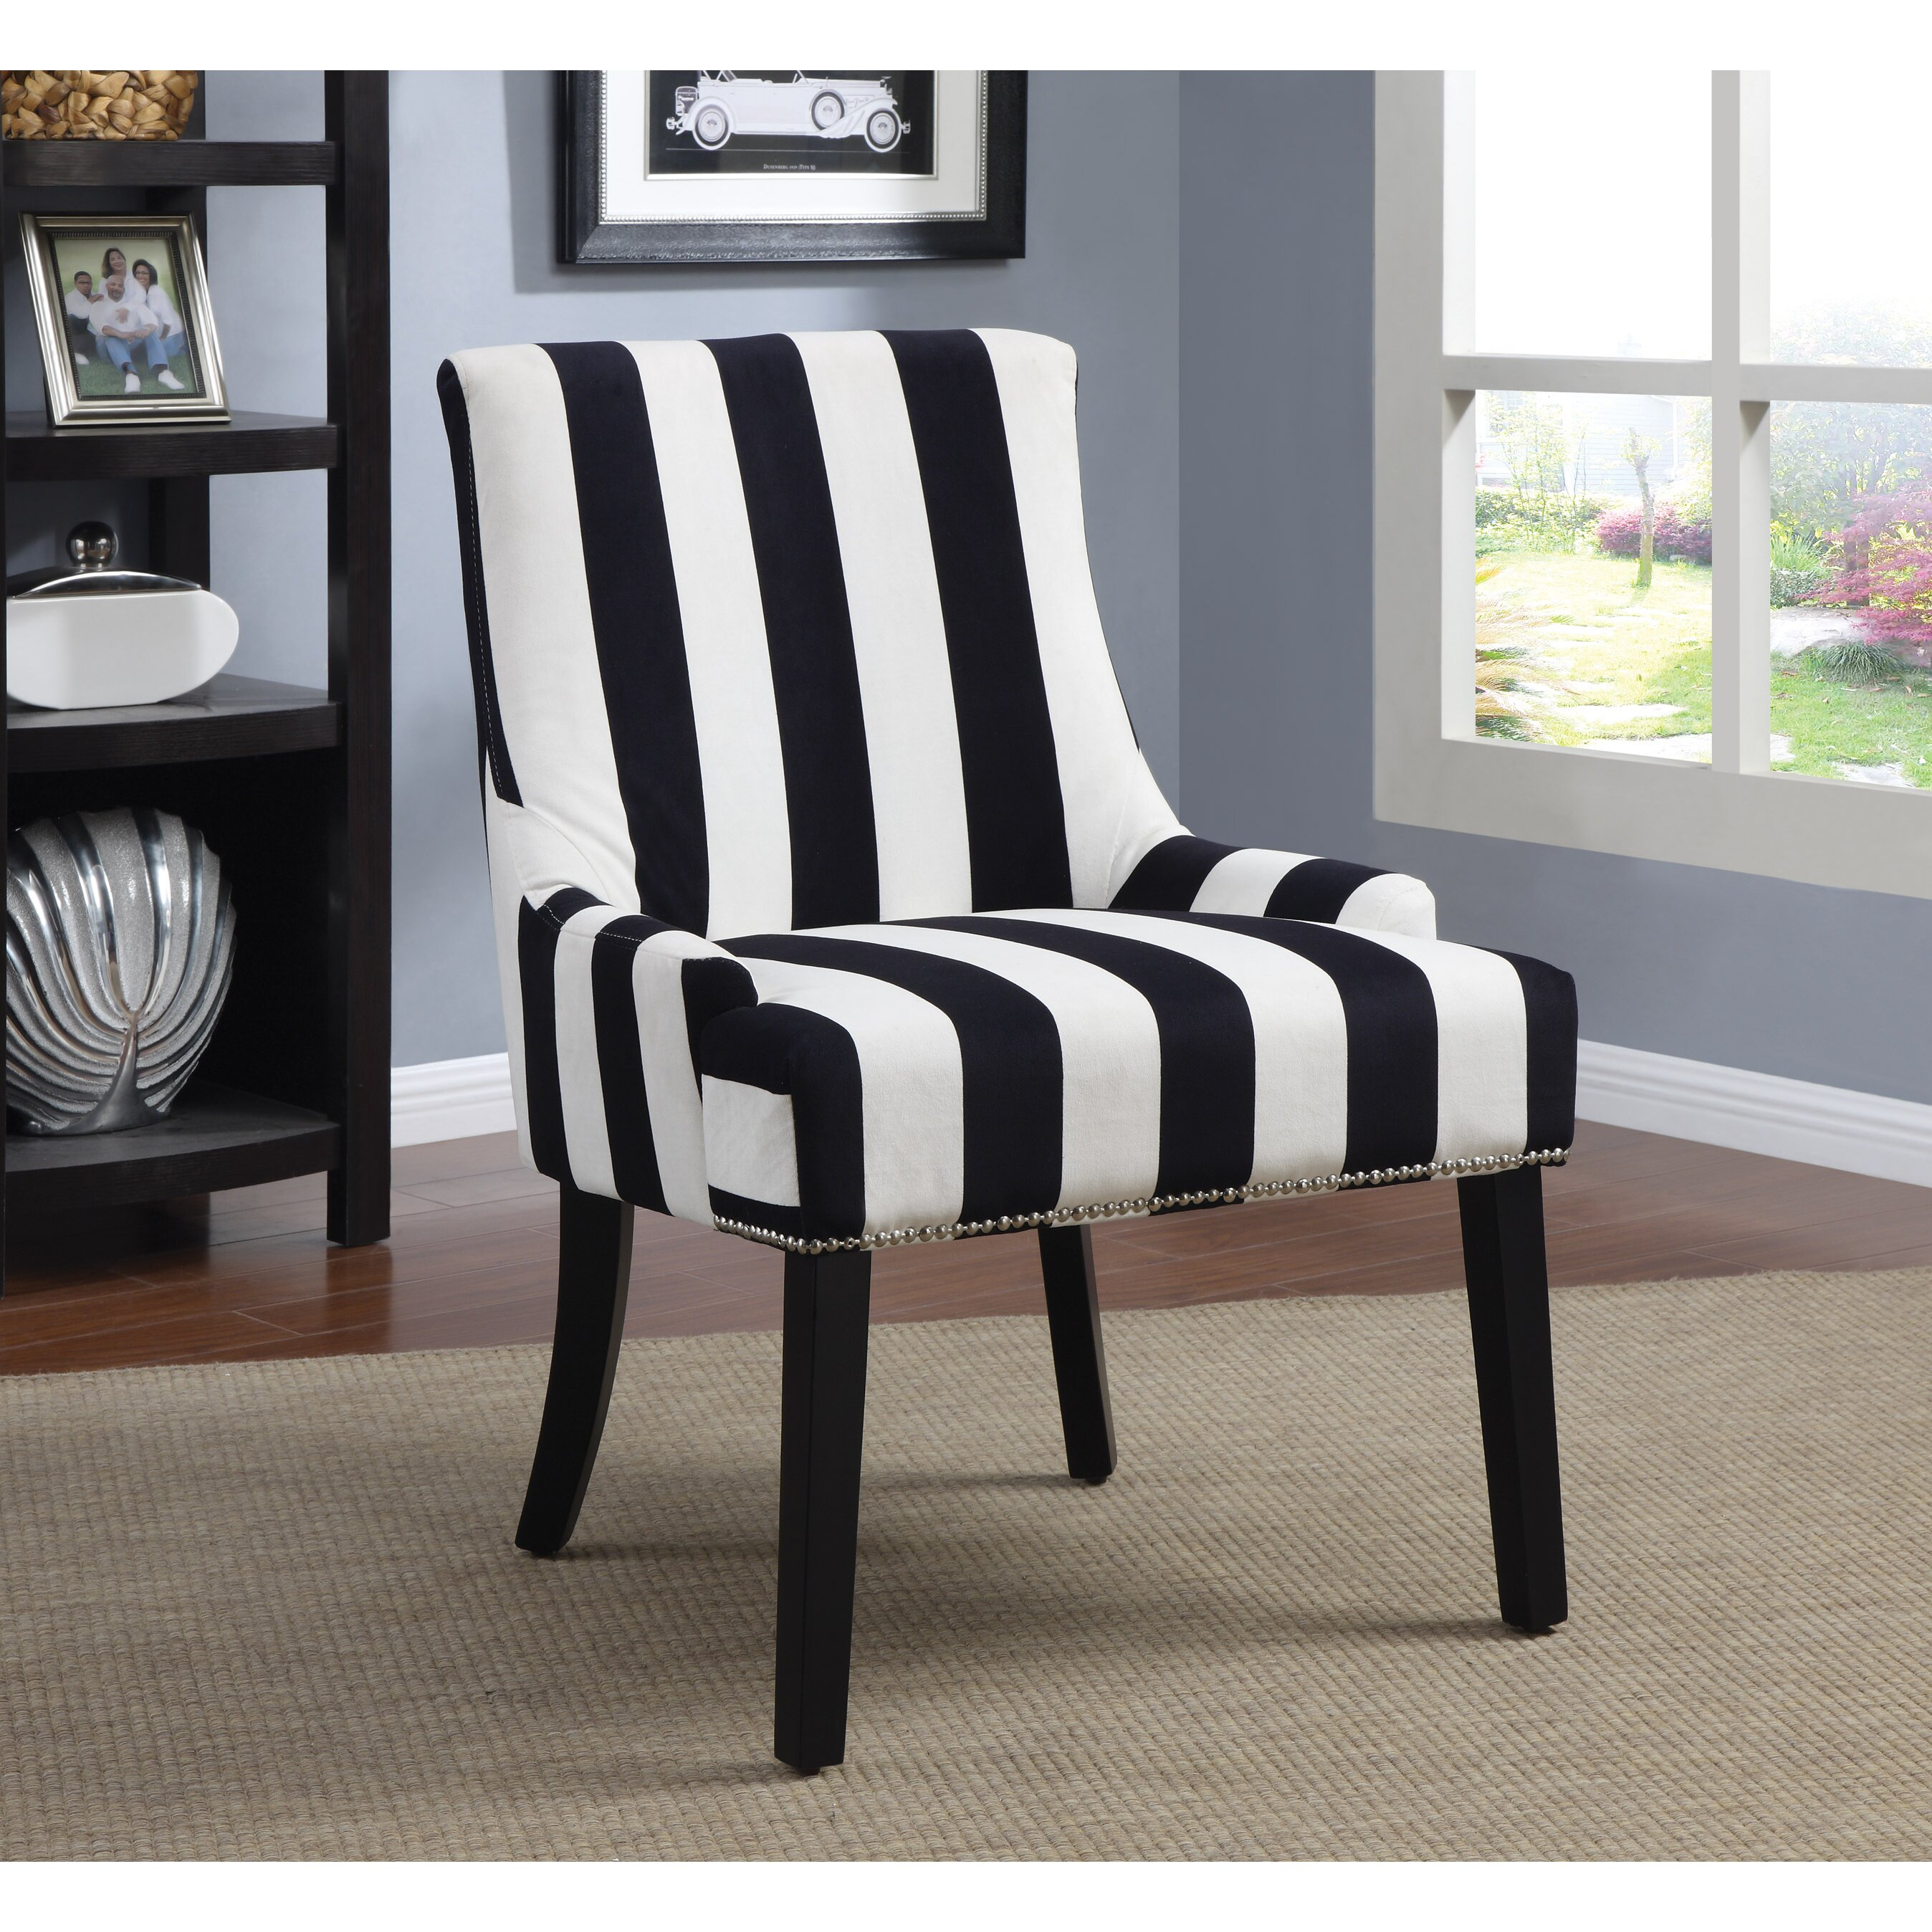 Fanback Chair With Navy Stripe: Navy Stripe Side Chair